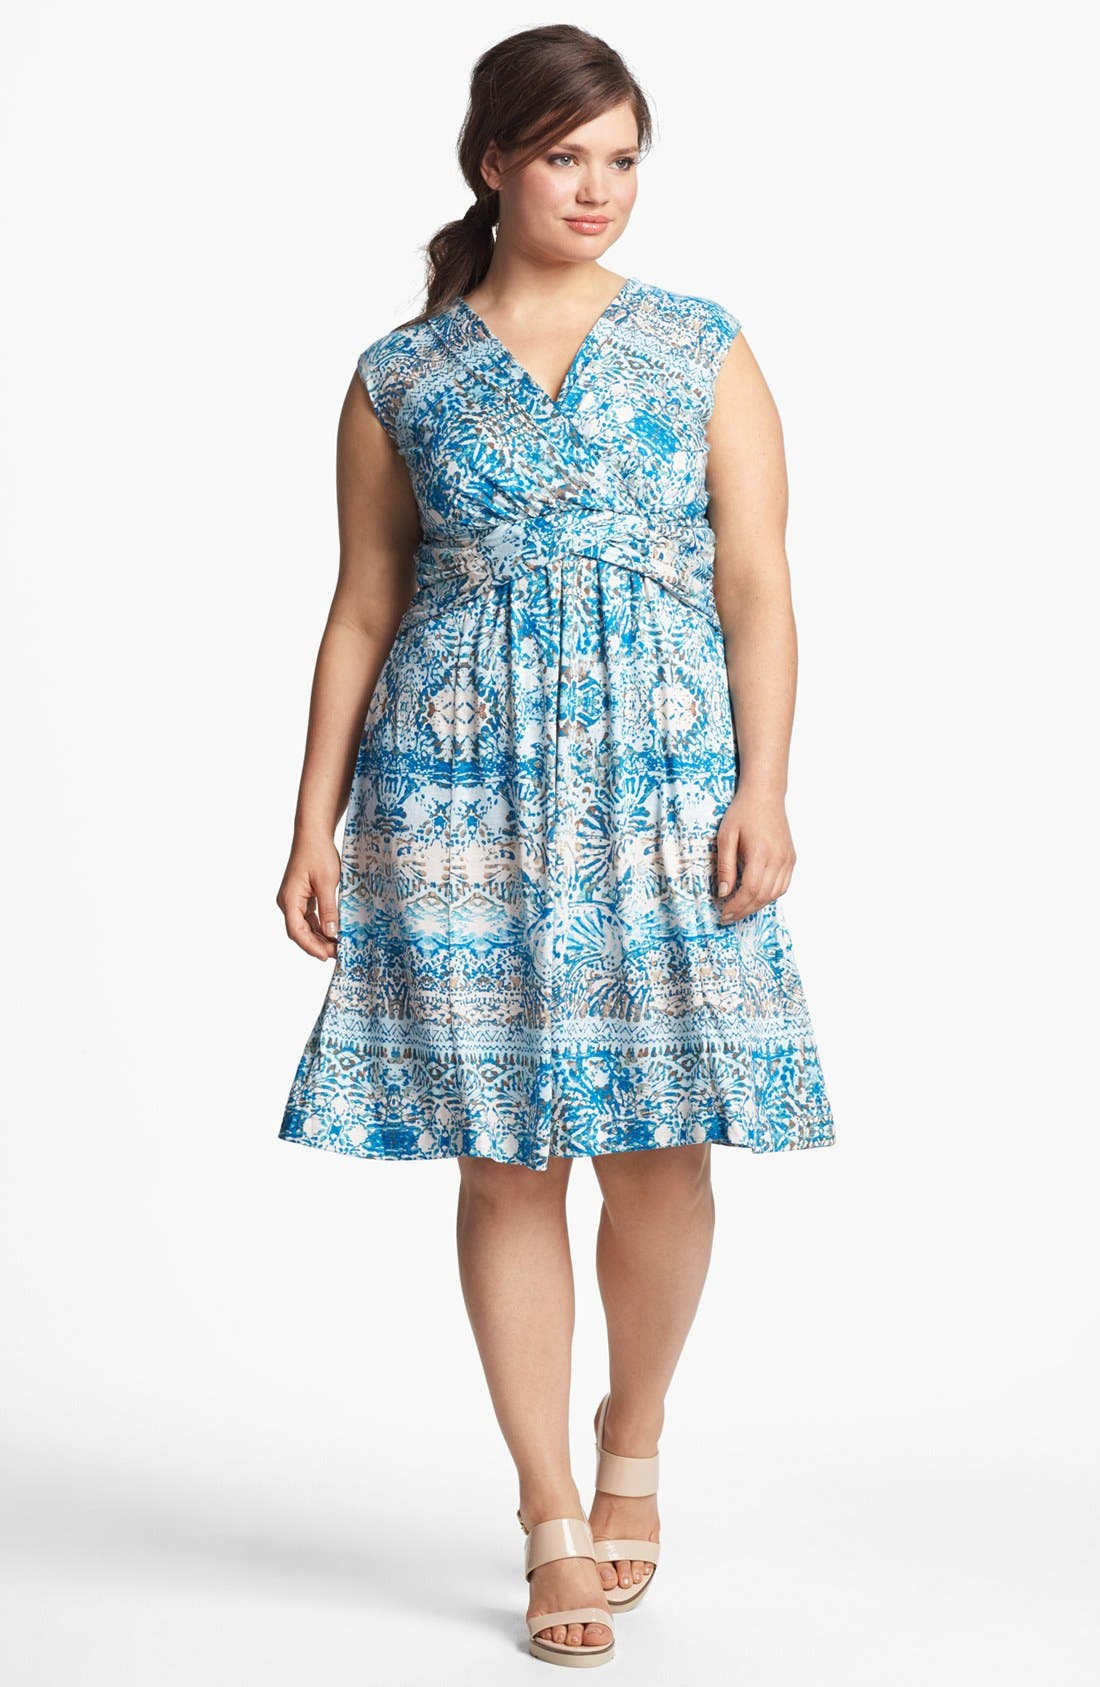 Alternate Image 1 Selected - Nic + Zoe 'Seven Seas' Print Fit & Flare Dress (Plus Size)